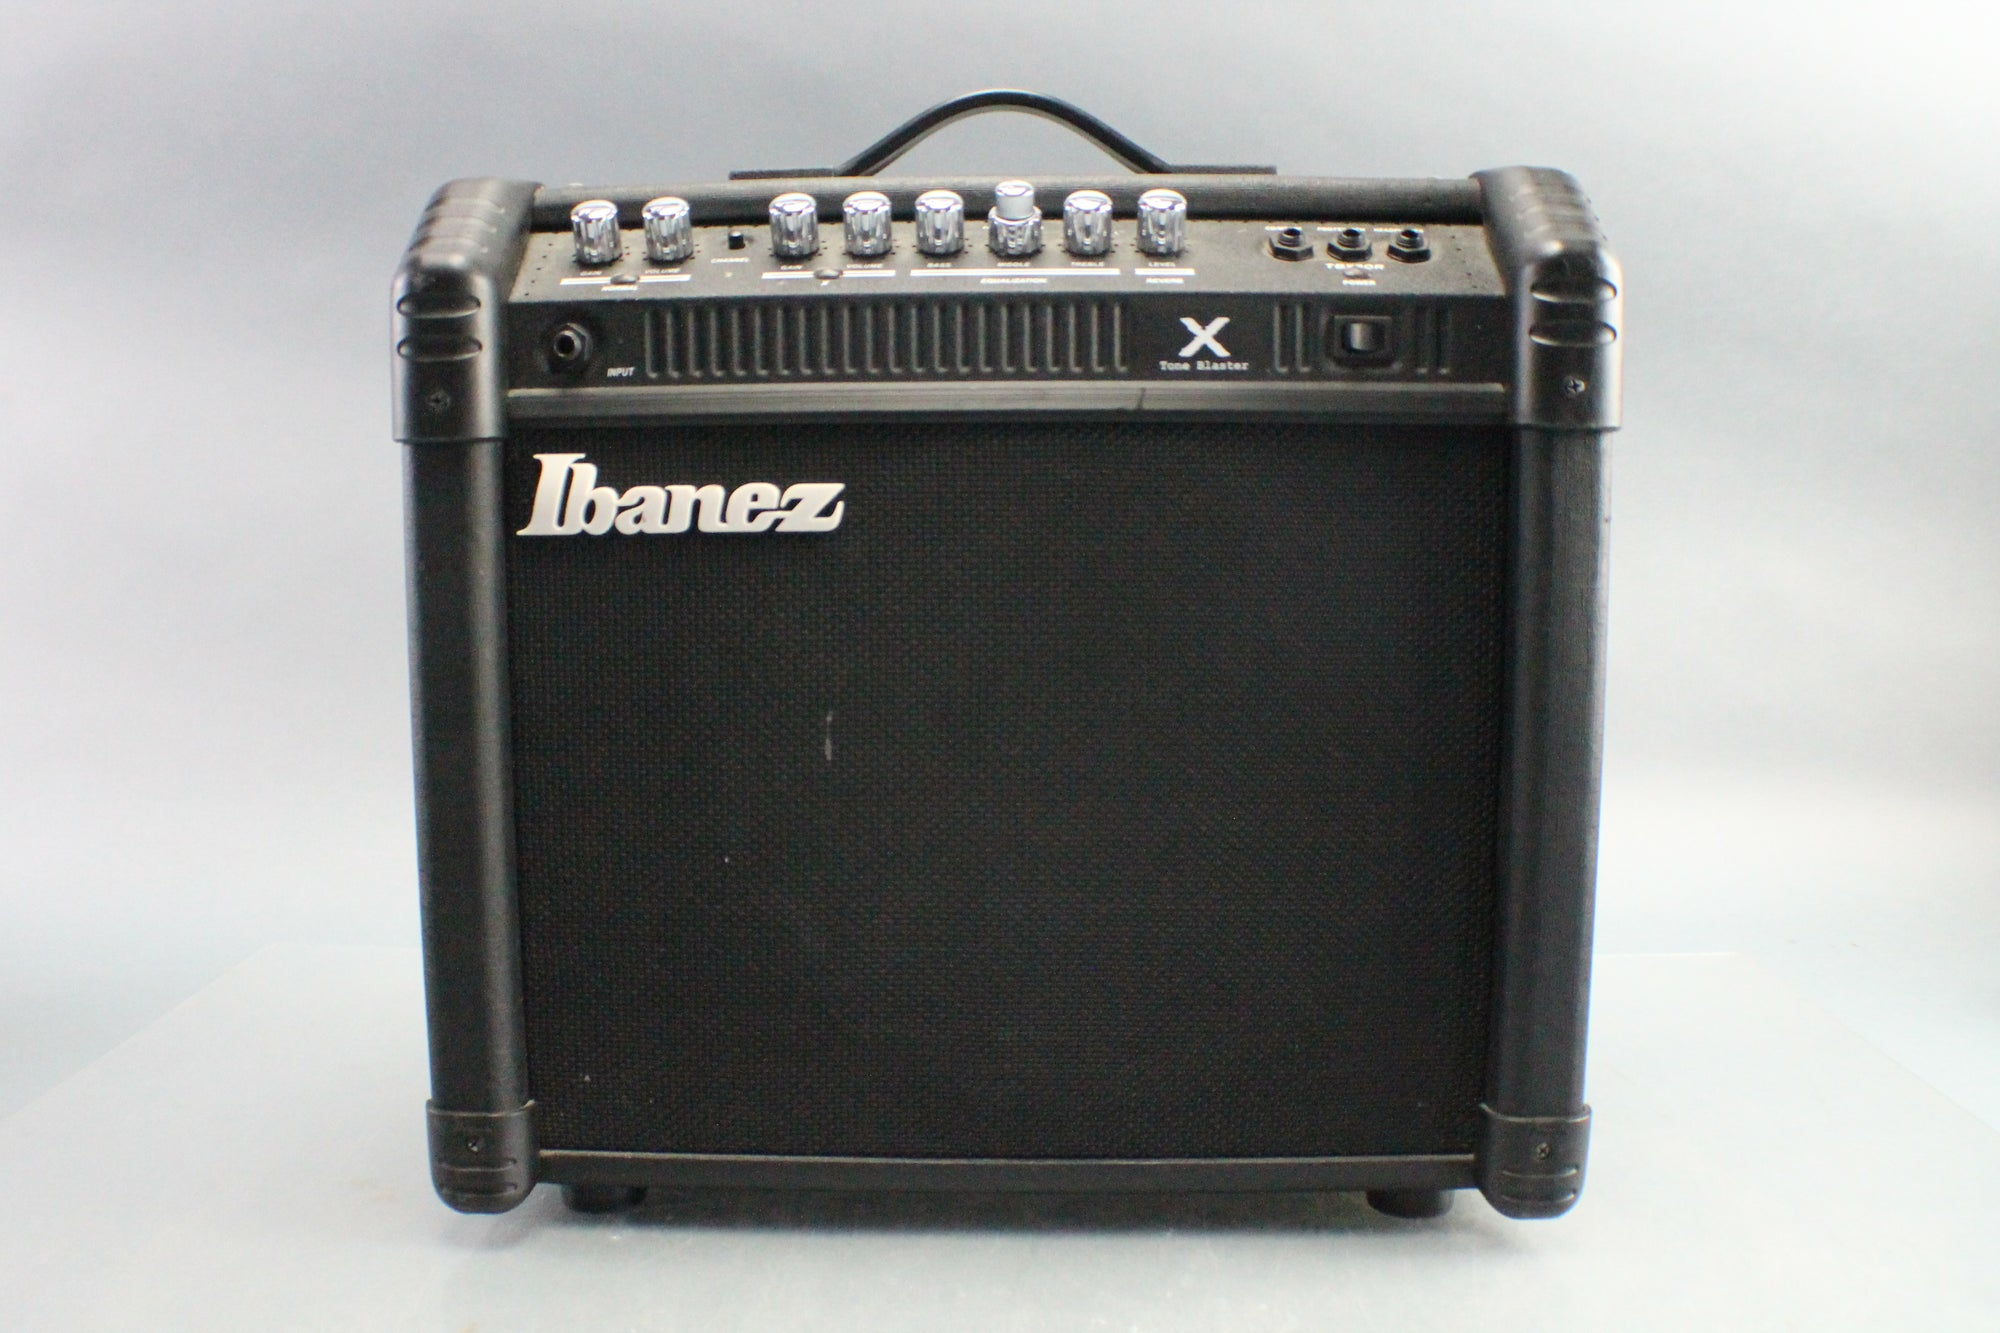 Ibanez TBX30R Tone Blaster 30 Watt 2 Channel Guitar Amp Built In Thermal Fuse